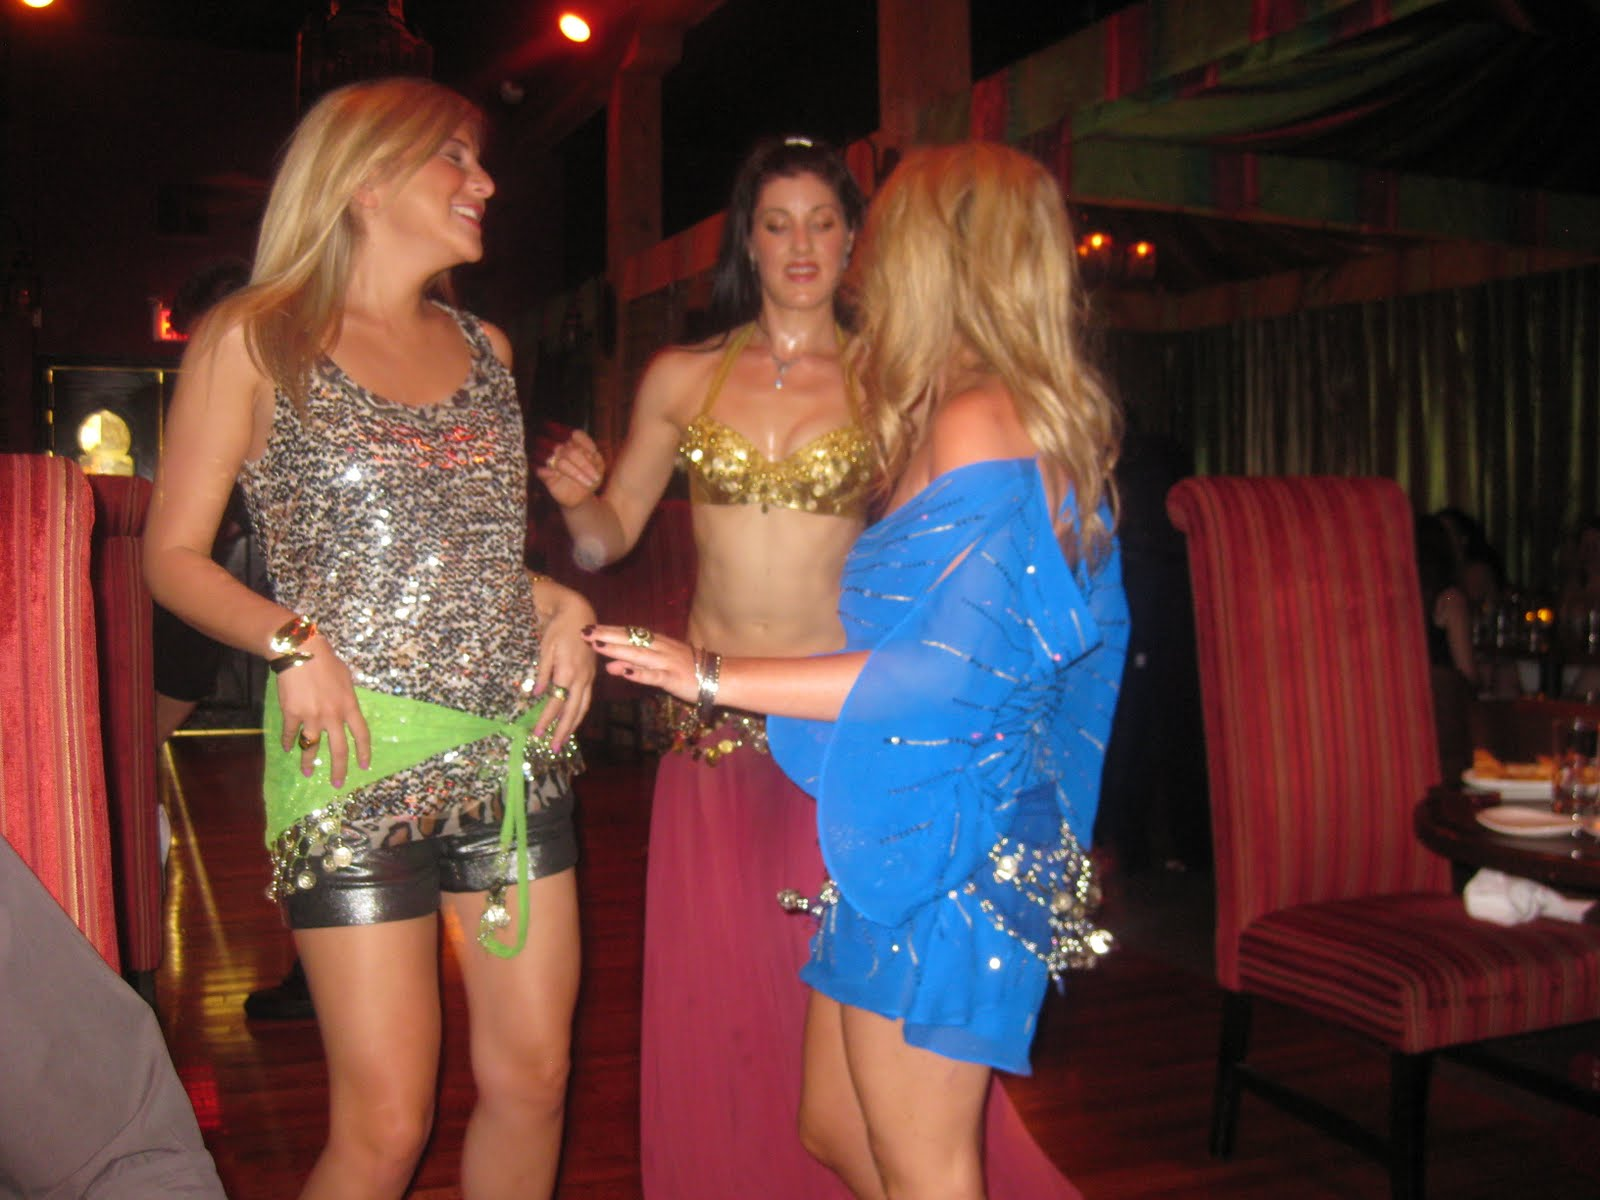 Dining entertainment experiences are a great way to bond with friends. No need for an occasion; grab your besties together google belly dancing restaurants ...  sc 1 st  BLONDE BRONZED TWENTYSOMETHING - WordPress.com & The Sultanu0027s Tent | BLONDE BRONZED TWENTYSOMETHING